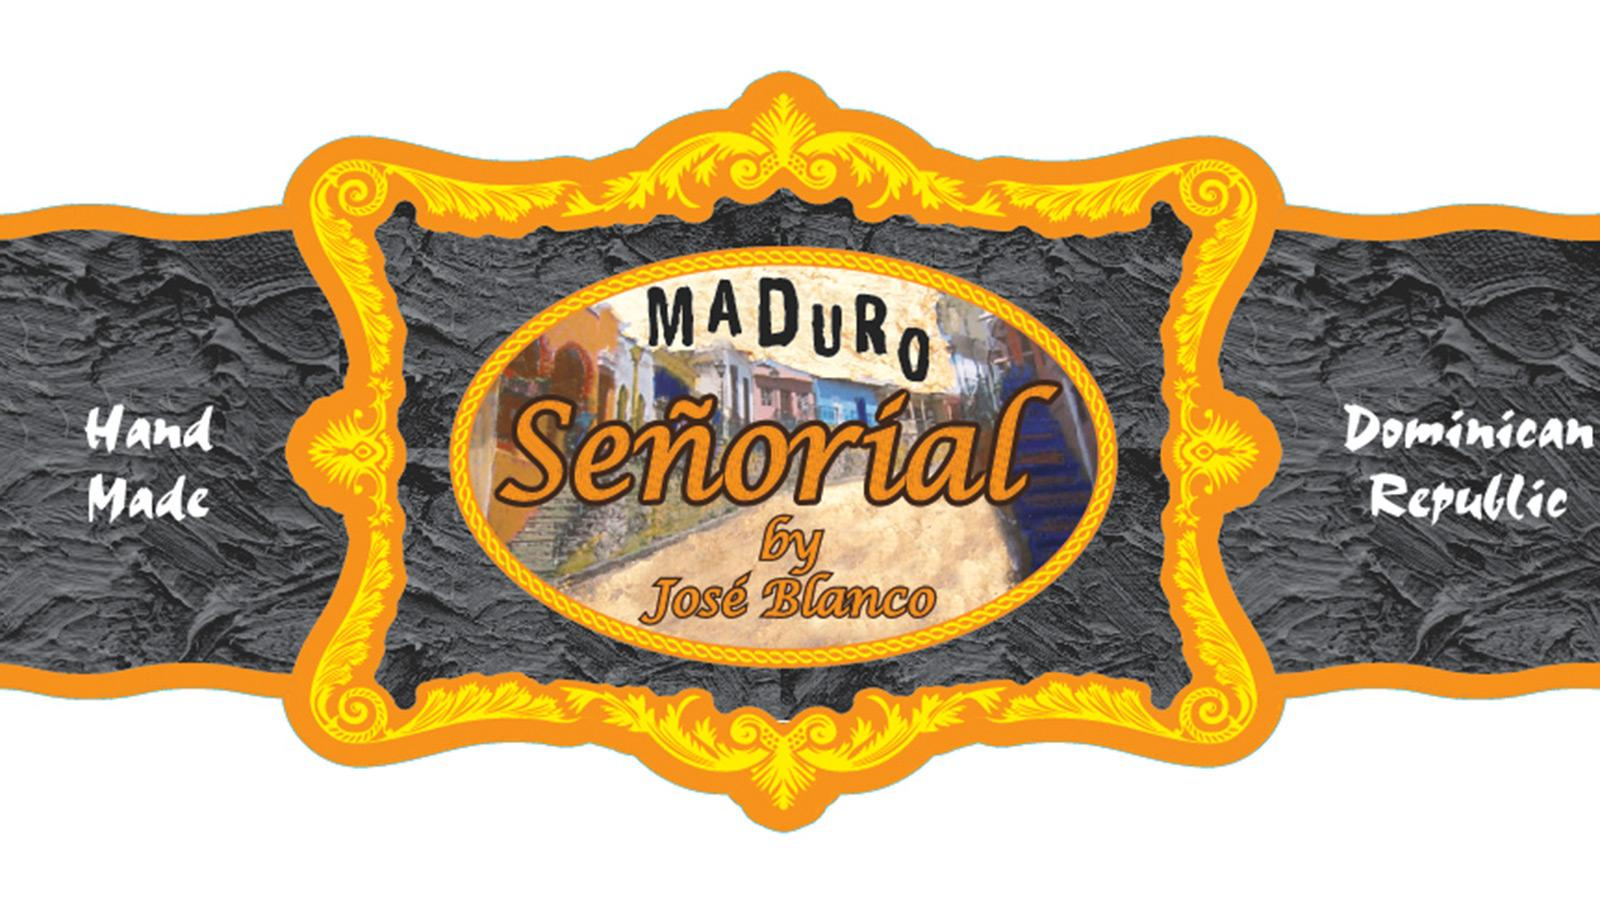 New Señorial Cigars Debut at IPCPR